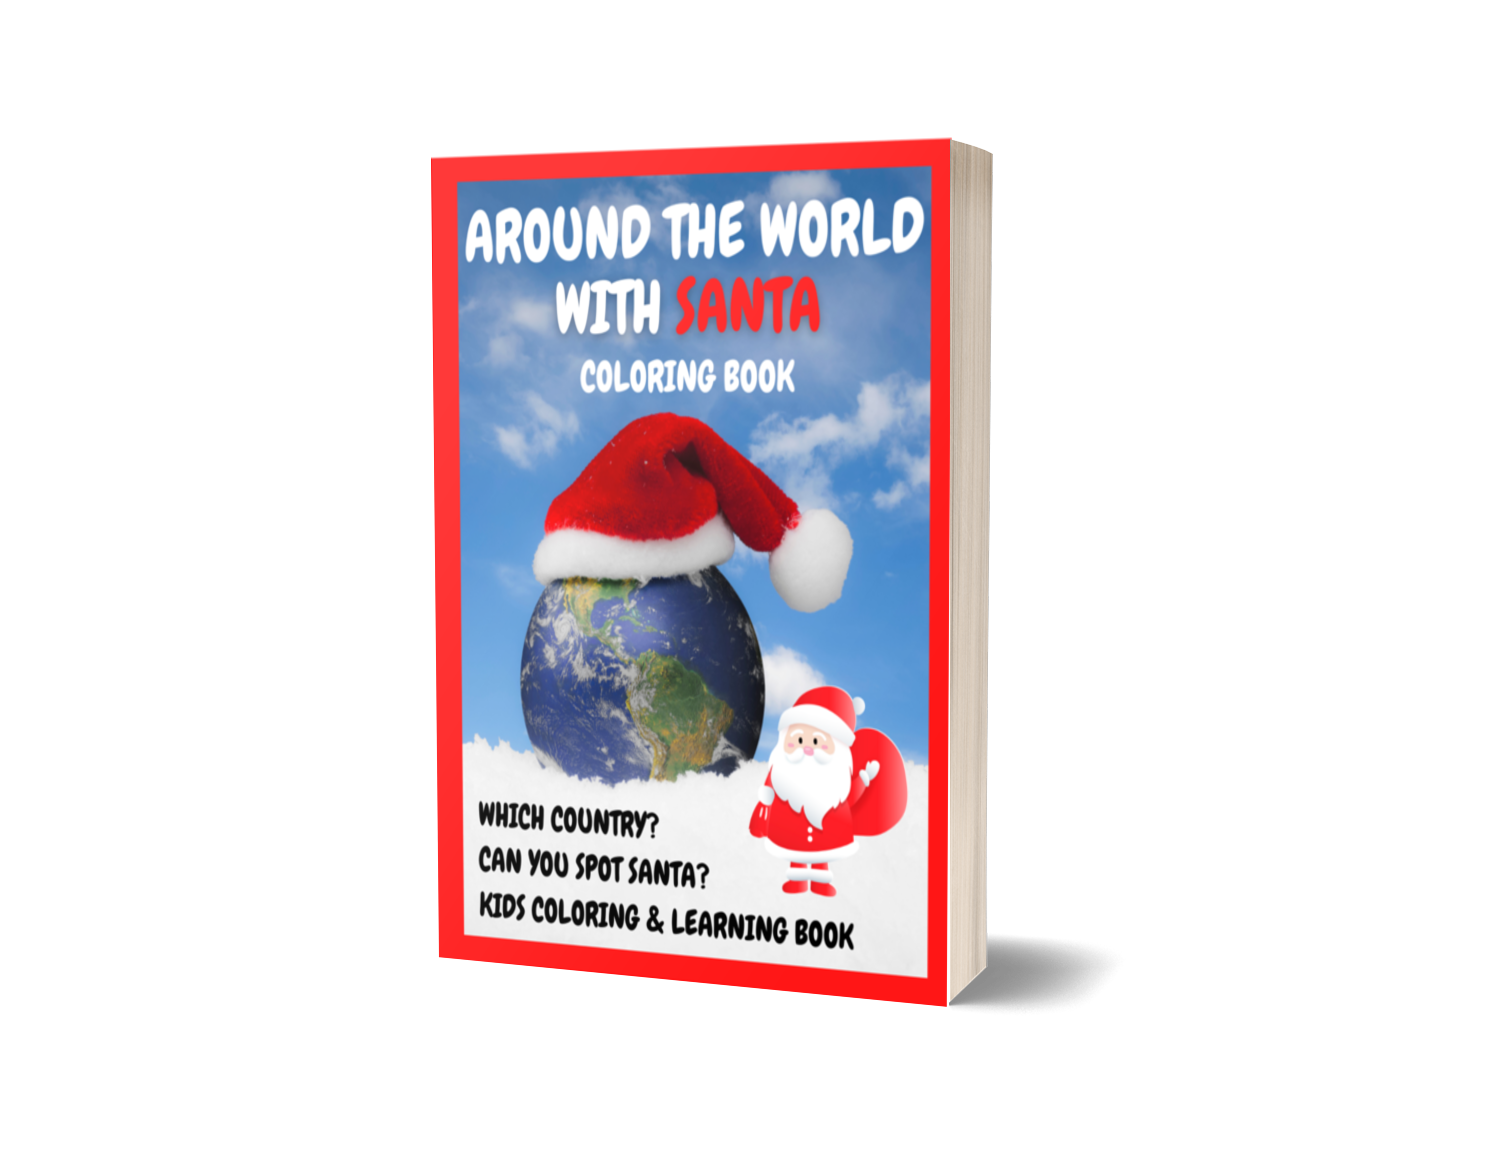 Around The World With Santa Coloring Book